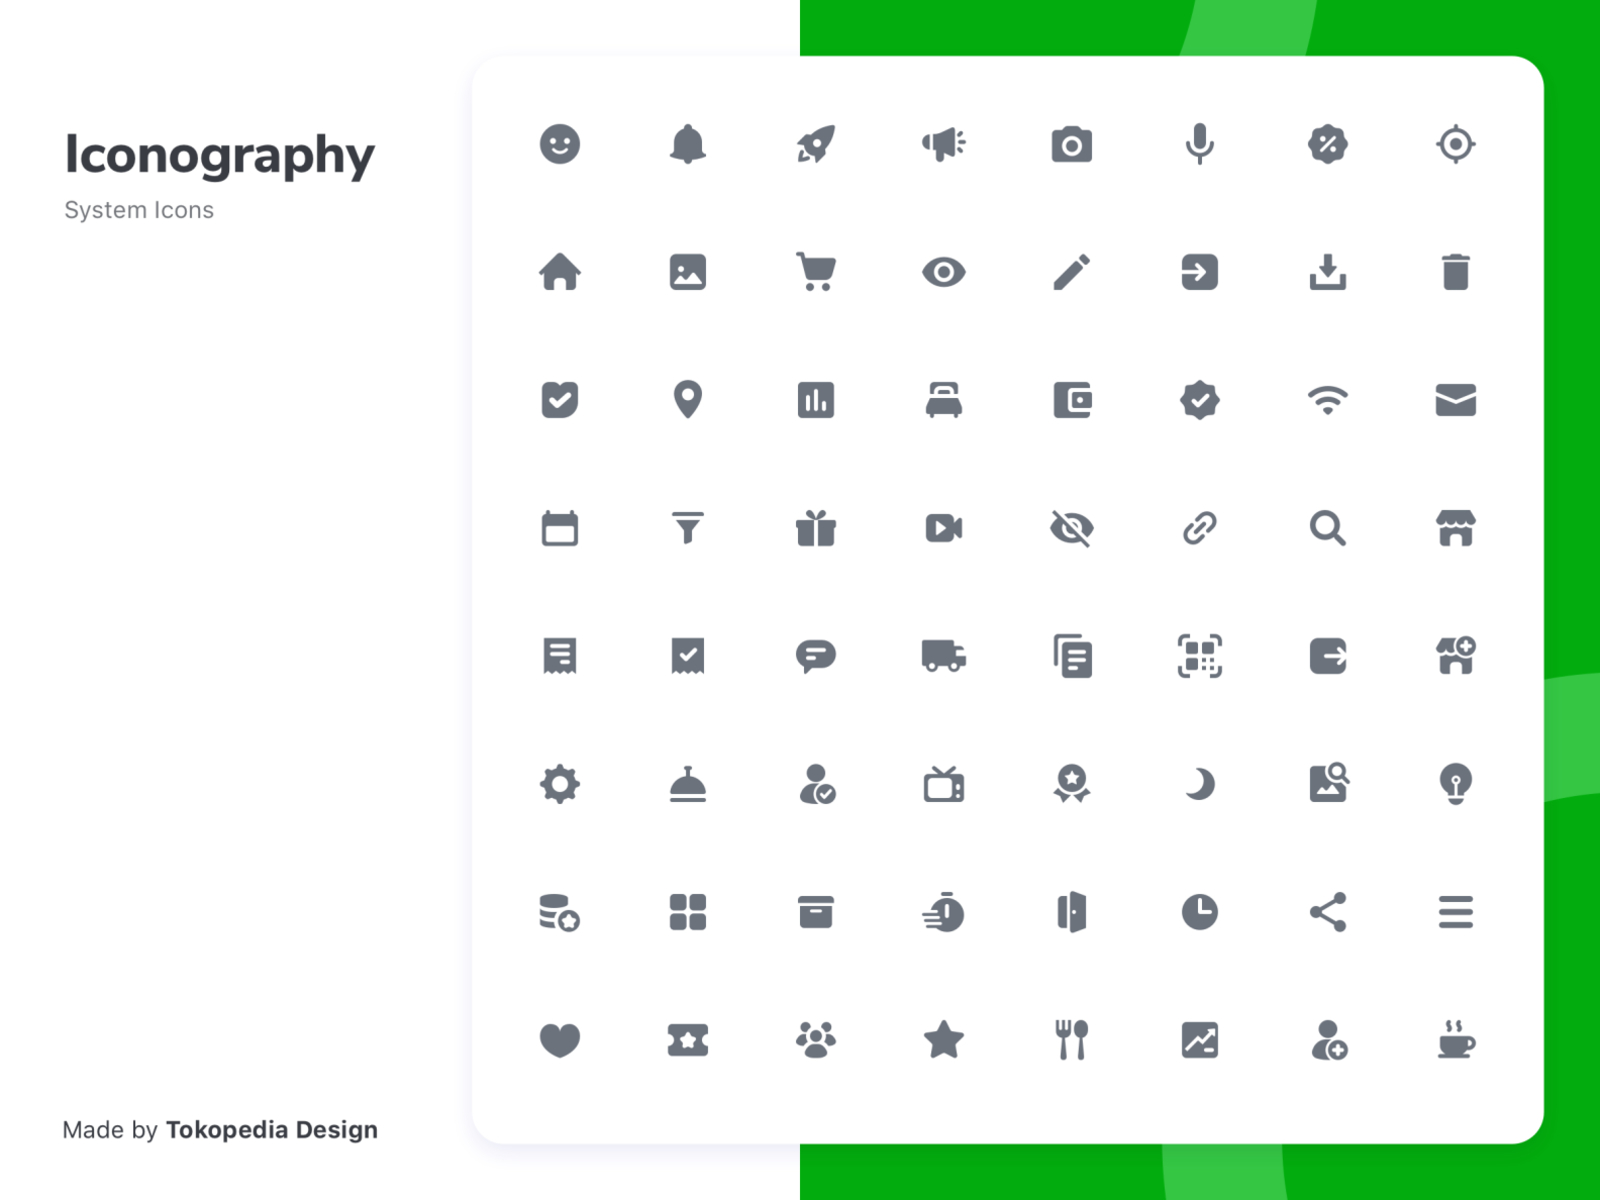 system icons by alvin for tokopedia on dribbble system icons by alvin for tokopedia on